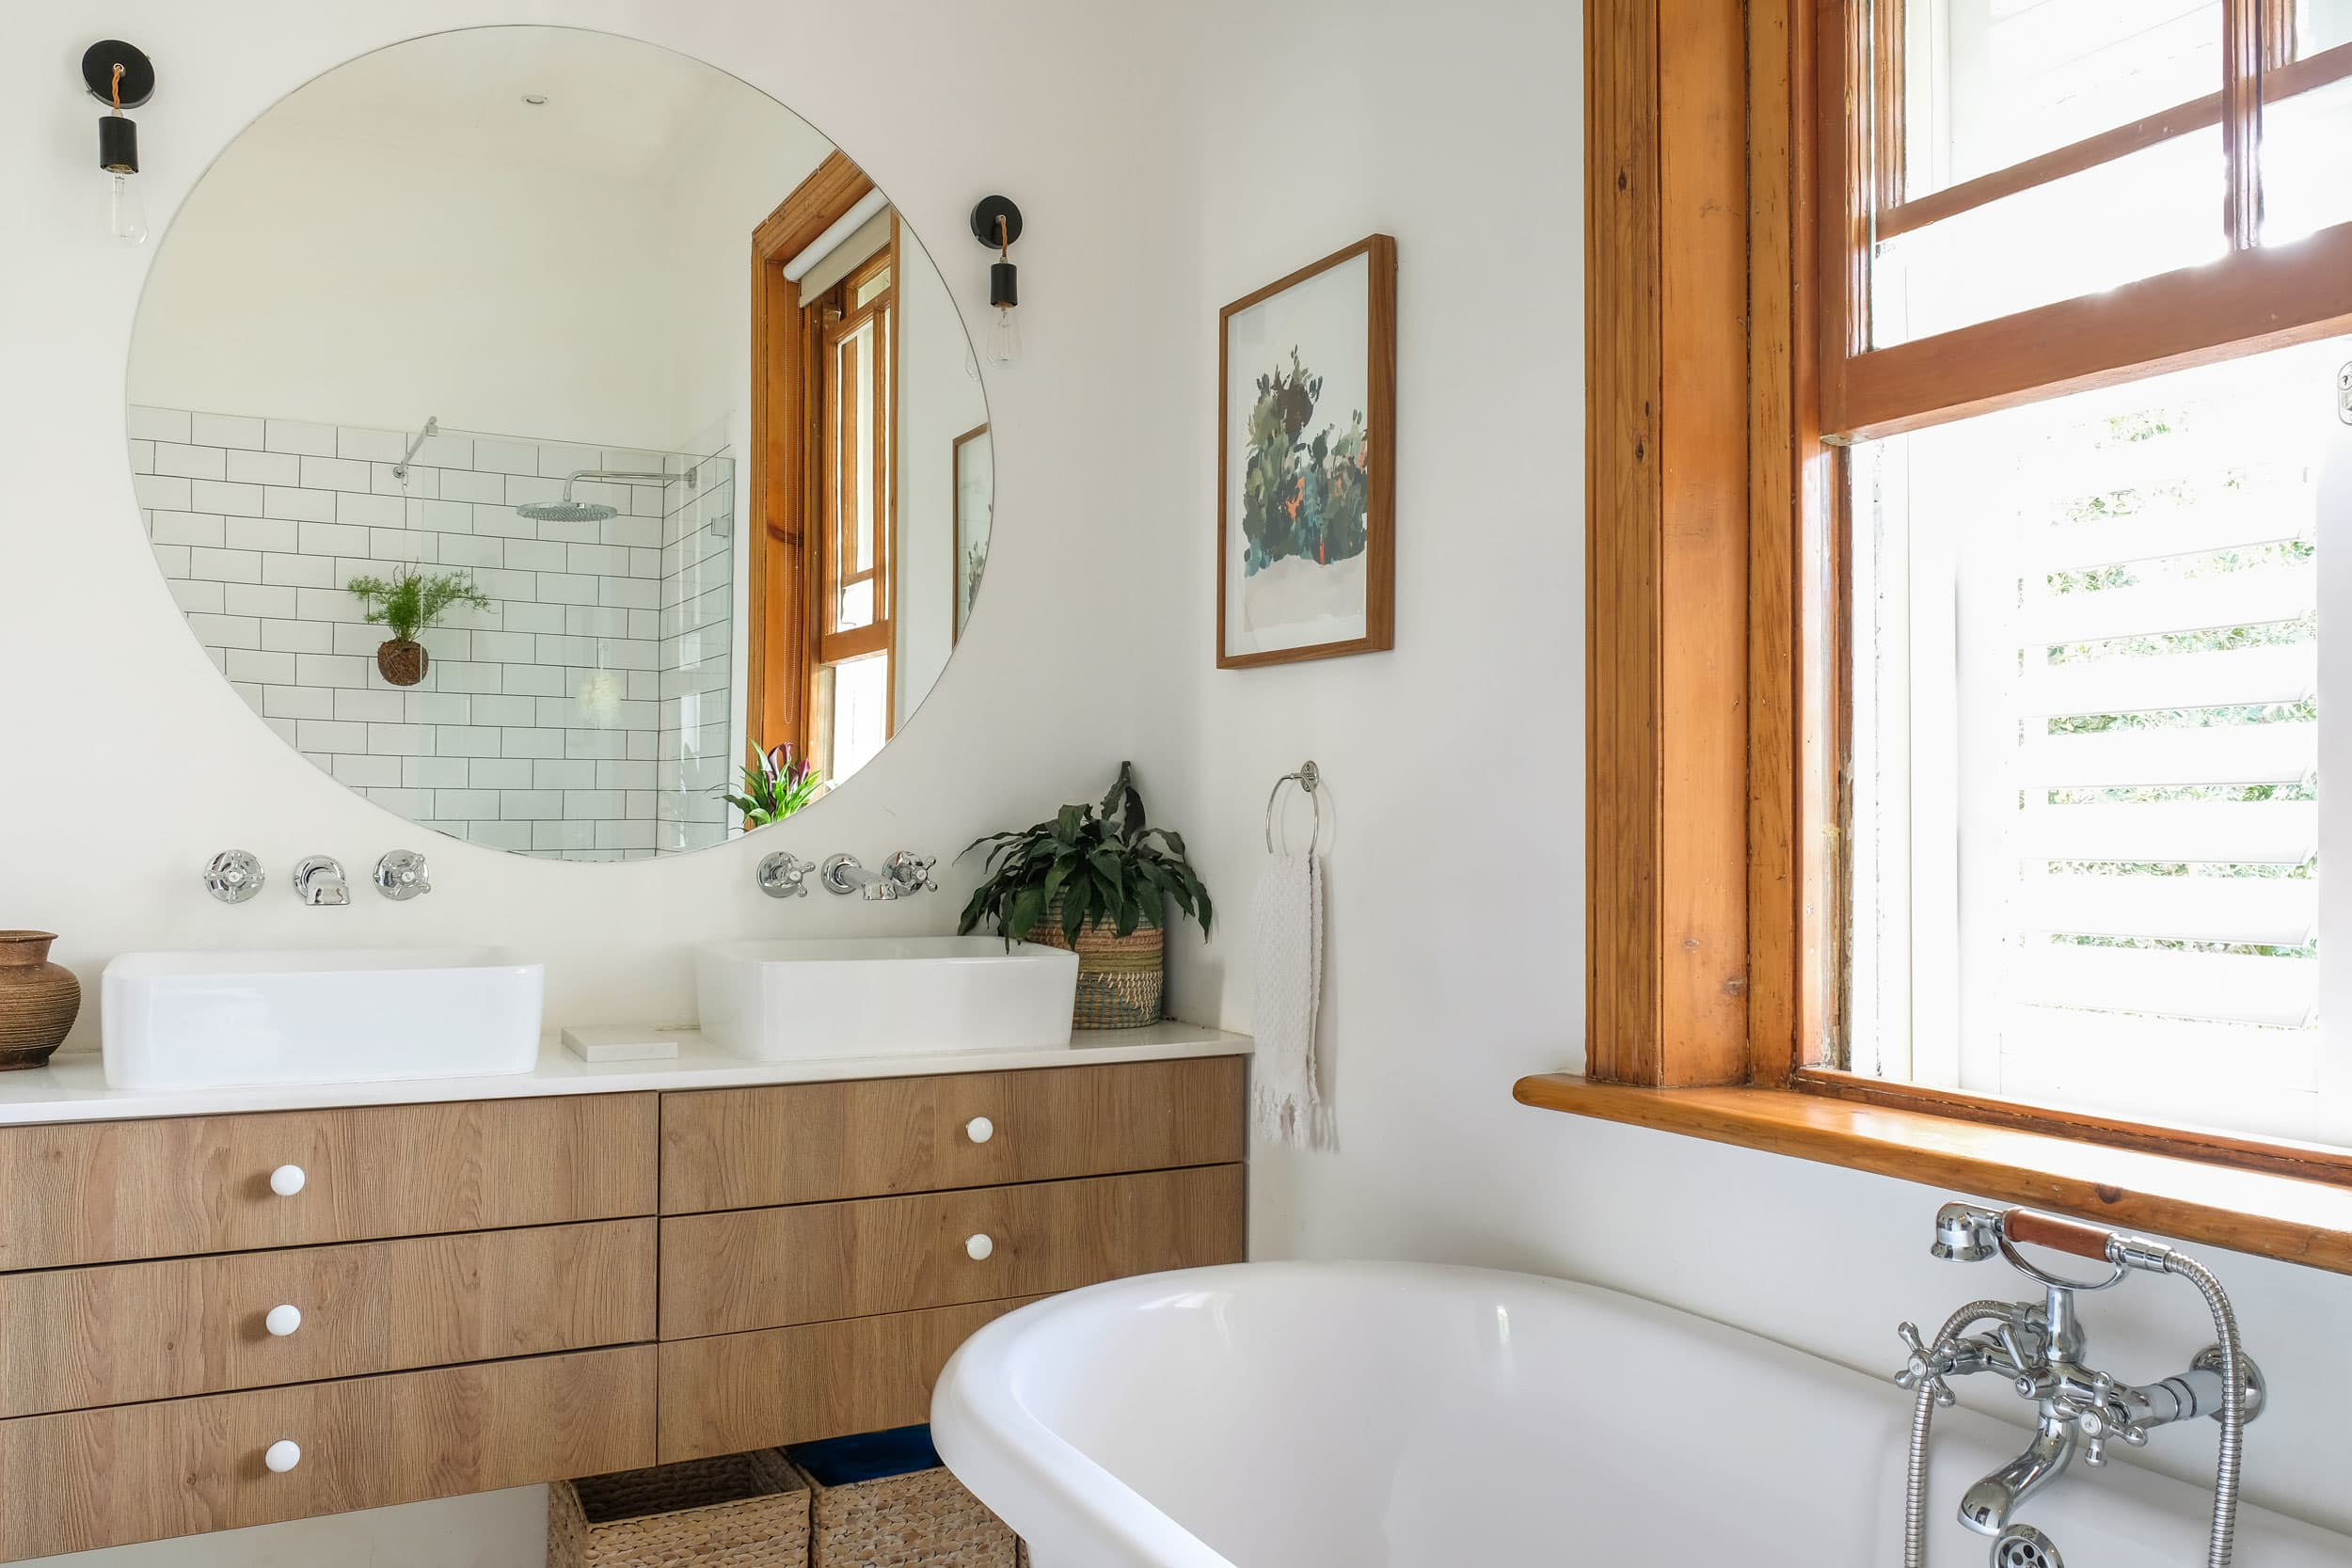 Dont make vanity lighting an afterthought in your bathroom